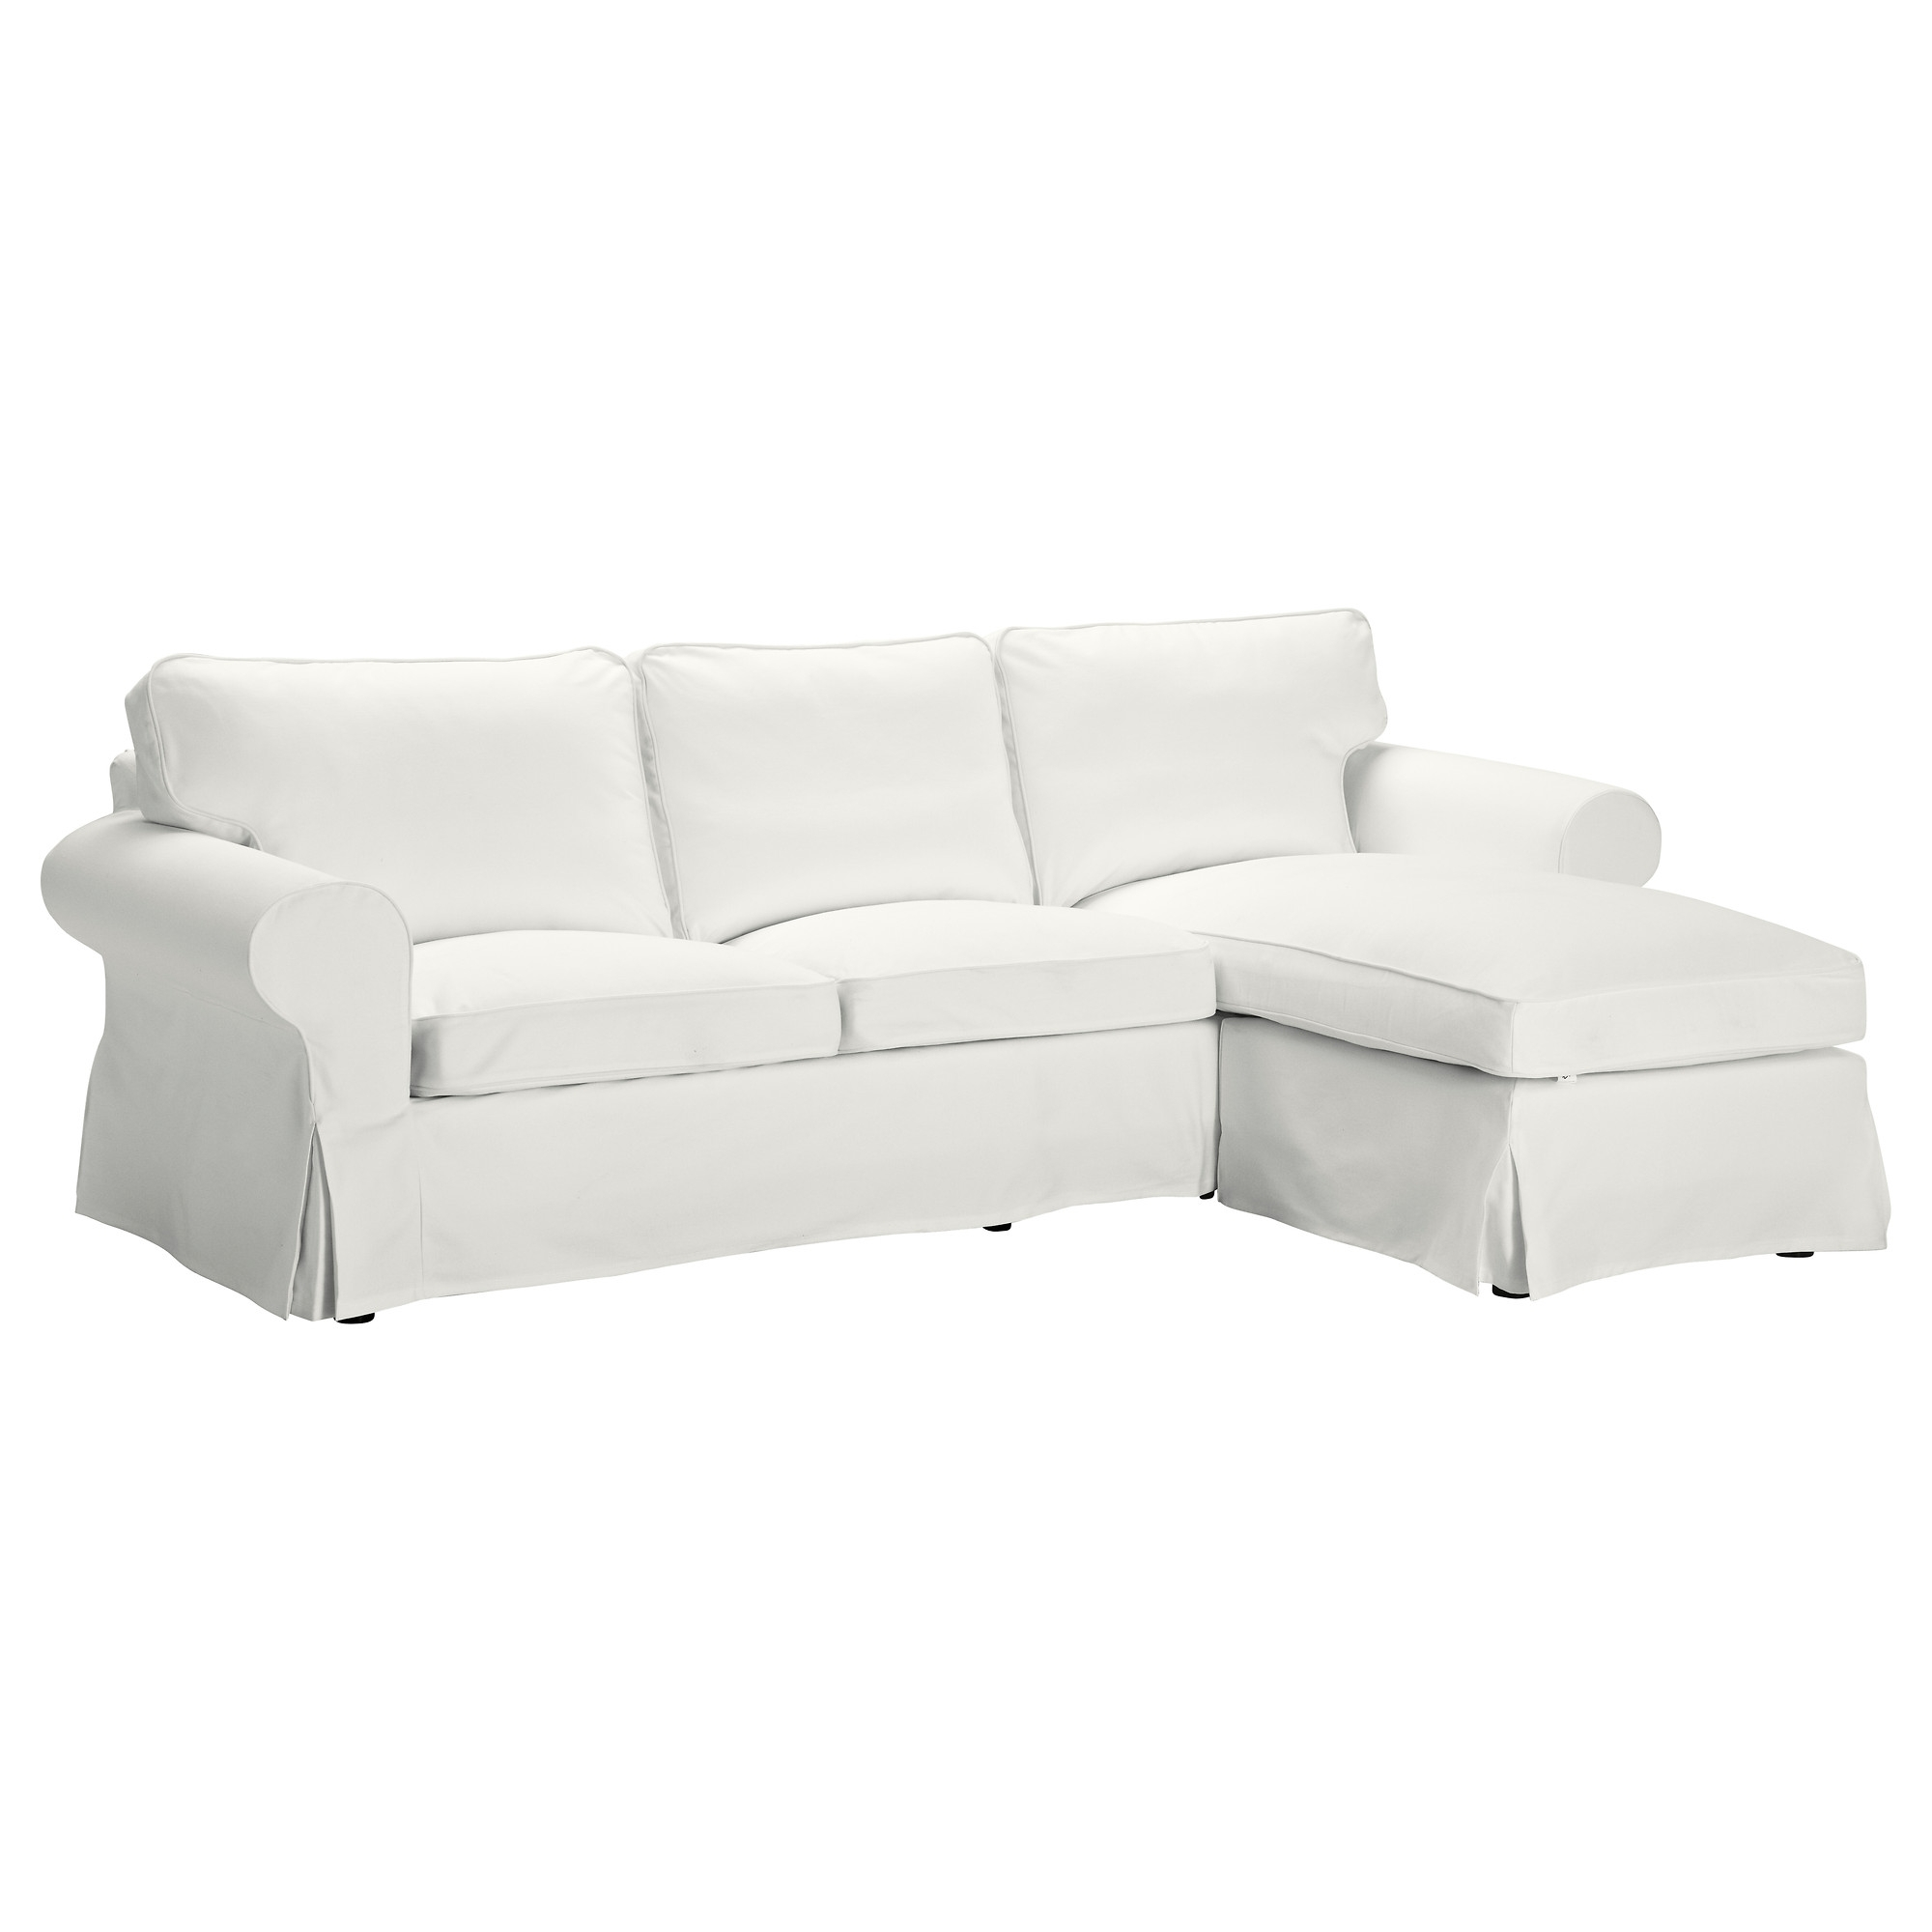 Preferred Ikea Chaise Sofas With Regard To Ektorp Cover For 3 Seat Sofa With Chaise Longue/blekinge White – Ikea (View 13 of 15)